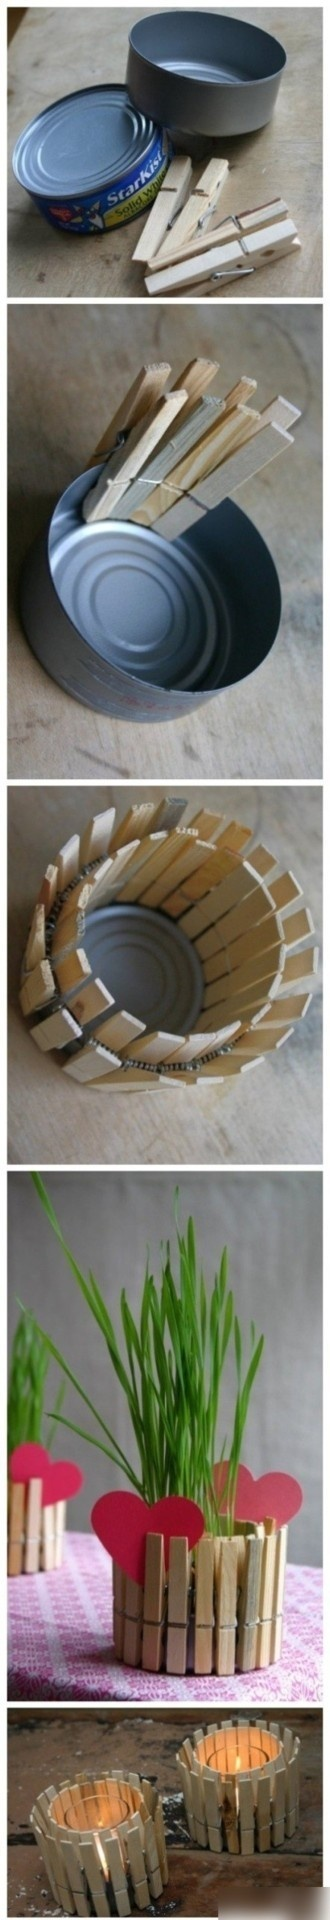 Some clothespins and a tuna can. Paint them white to look like a white picket fence. Real cute and easy!